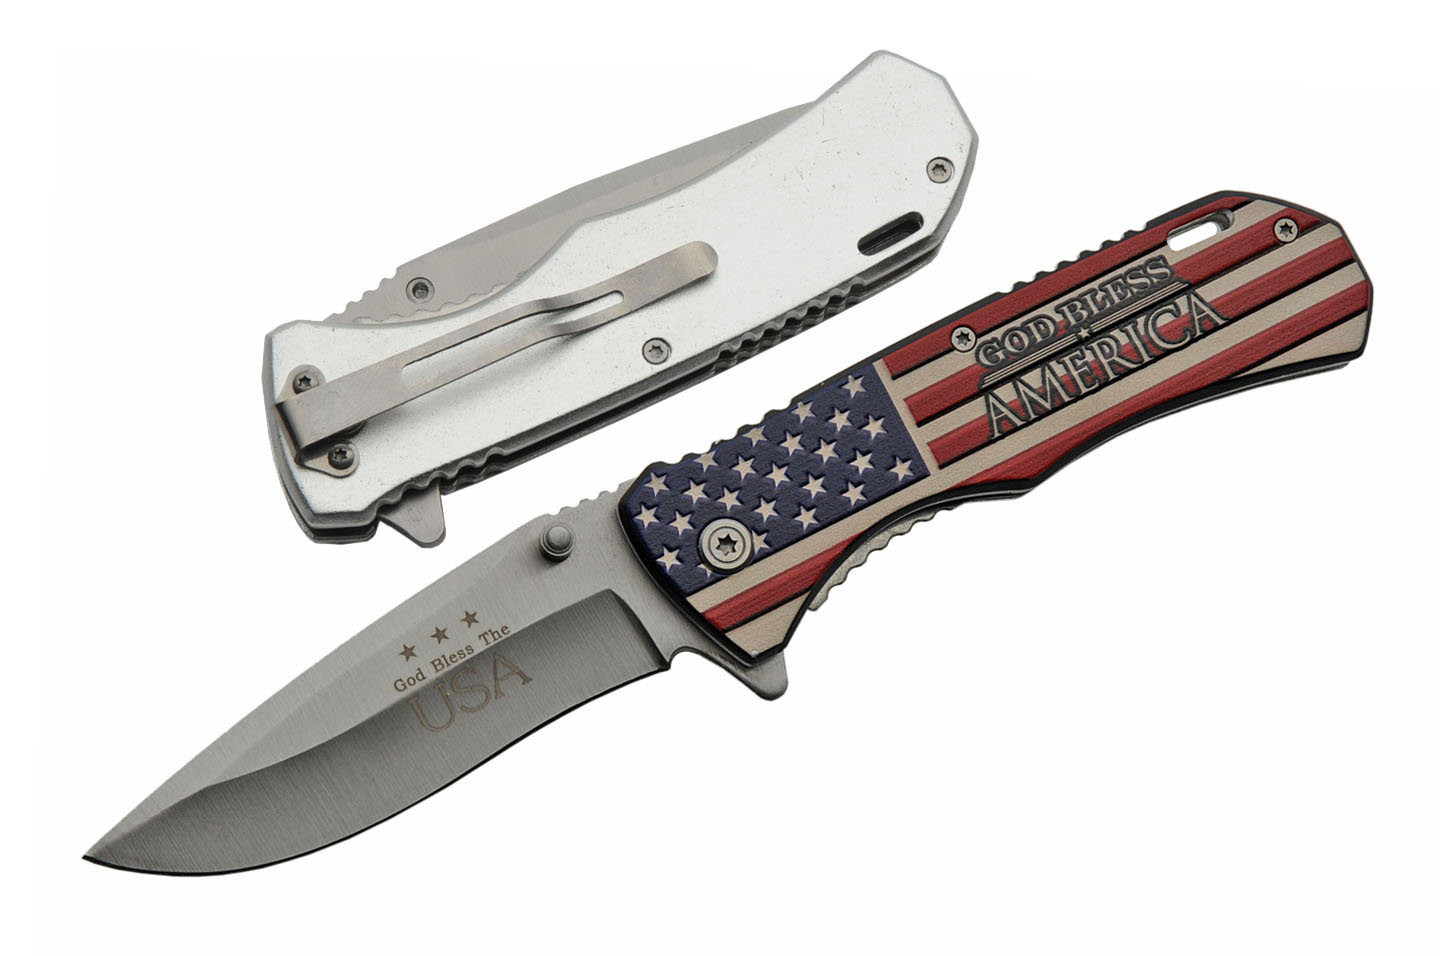 Spring-Assist Folding Knife | Patriotic God Bless America USA Flag Silver